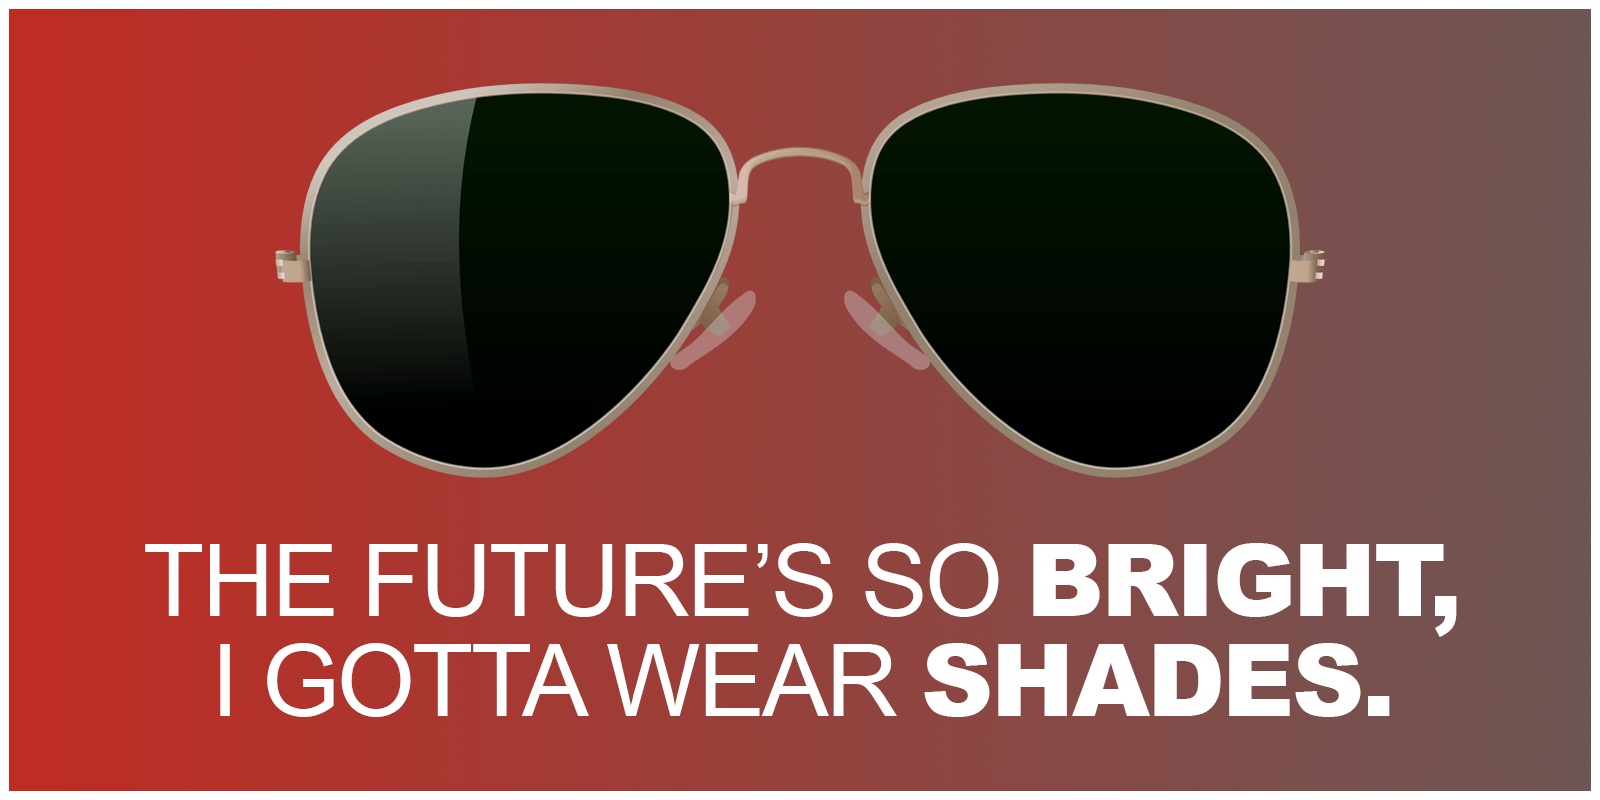 Sunglasses and Text--The Future's So Bright I Gotta Wear Shades